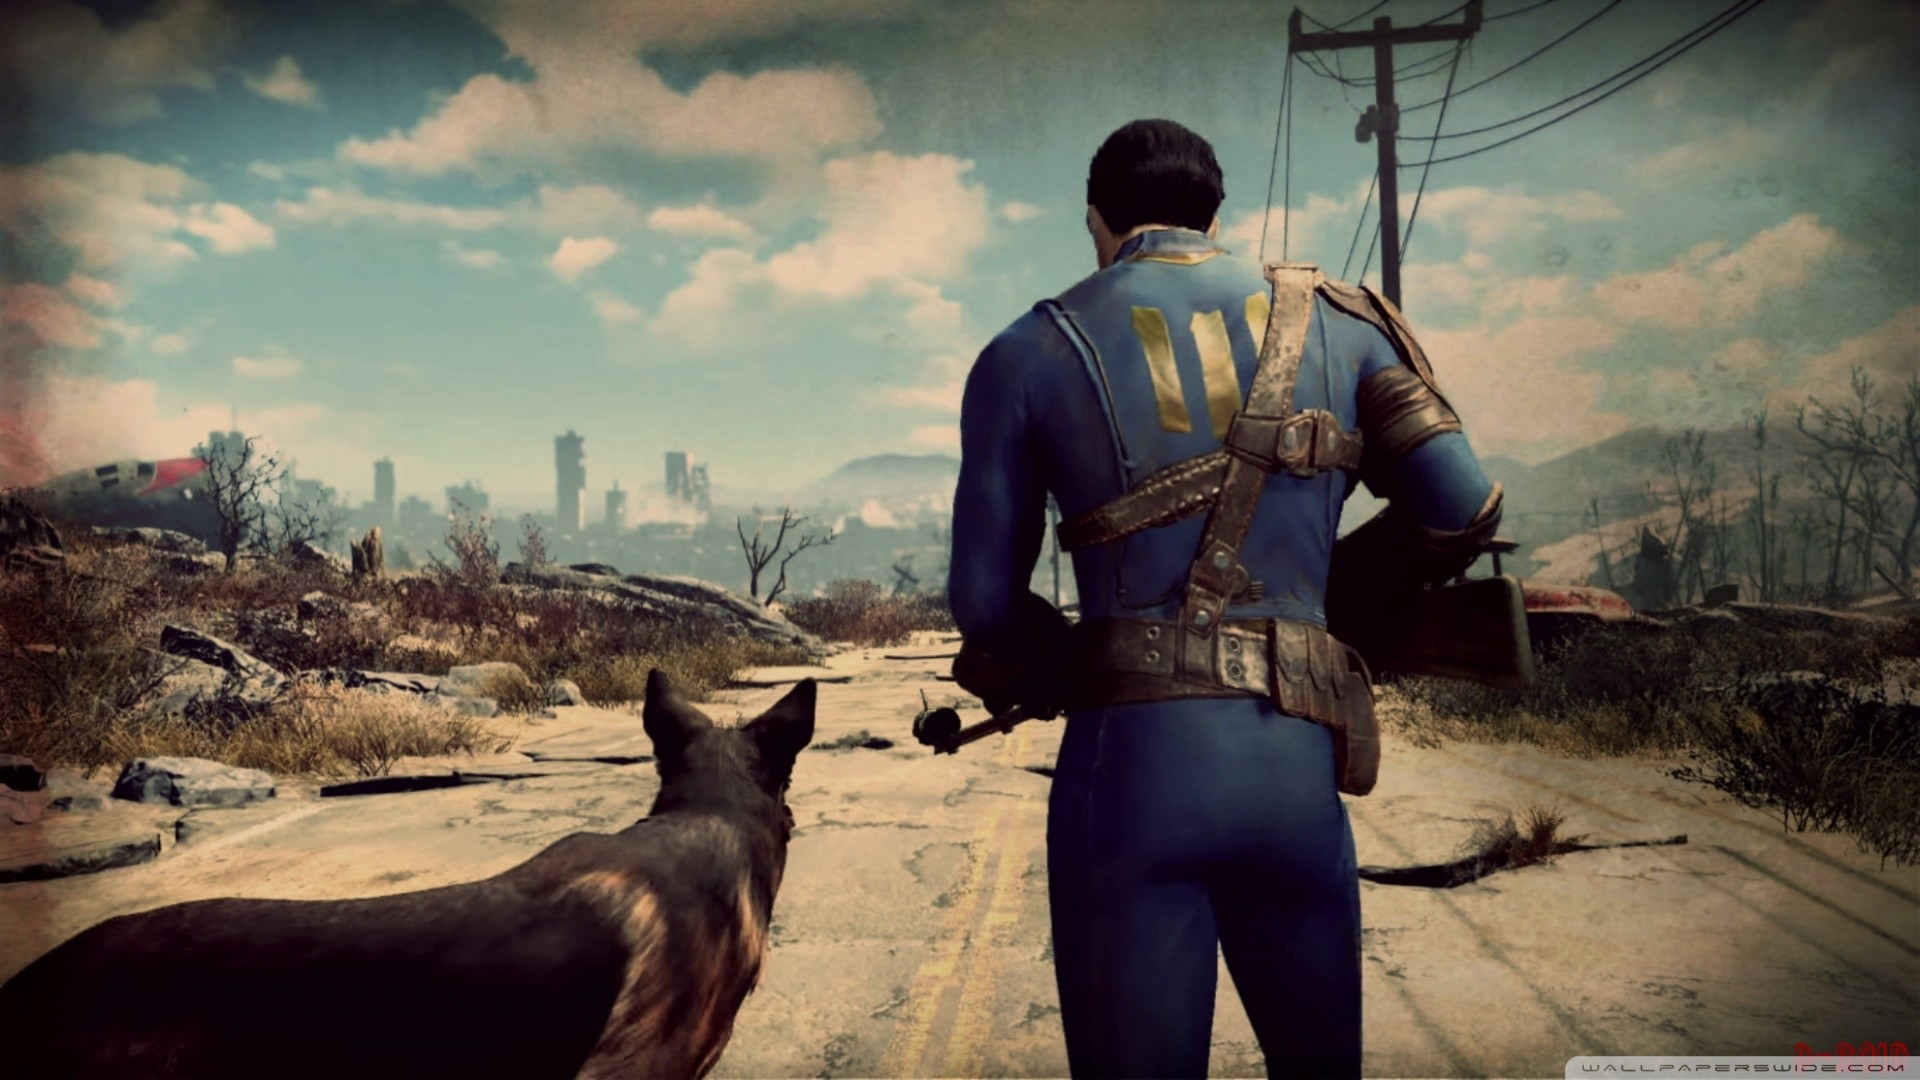 Res: 1920x1080, 32 - 34 Fallout Wallpapers For Your Leisure